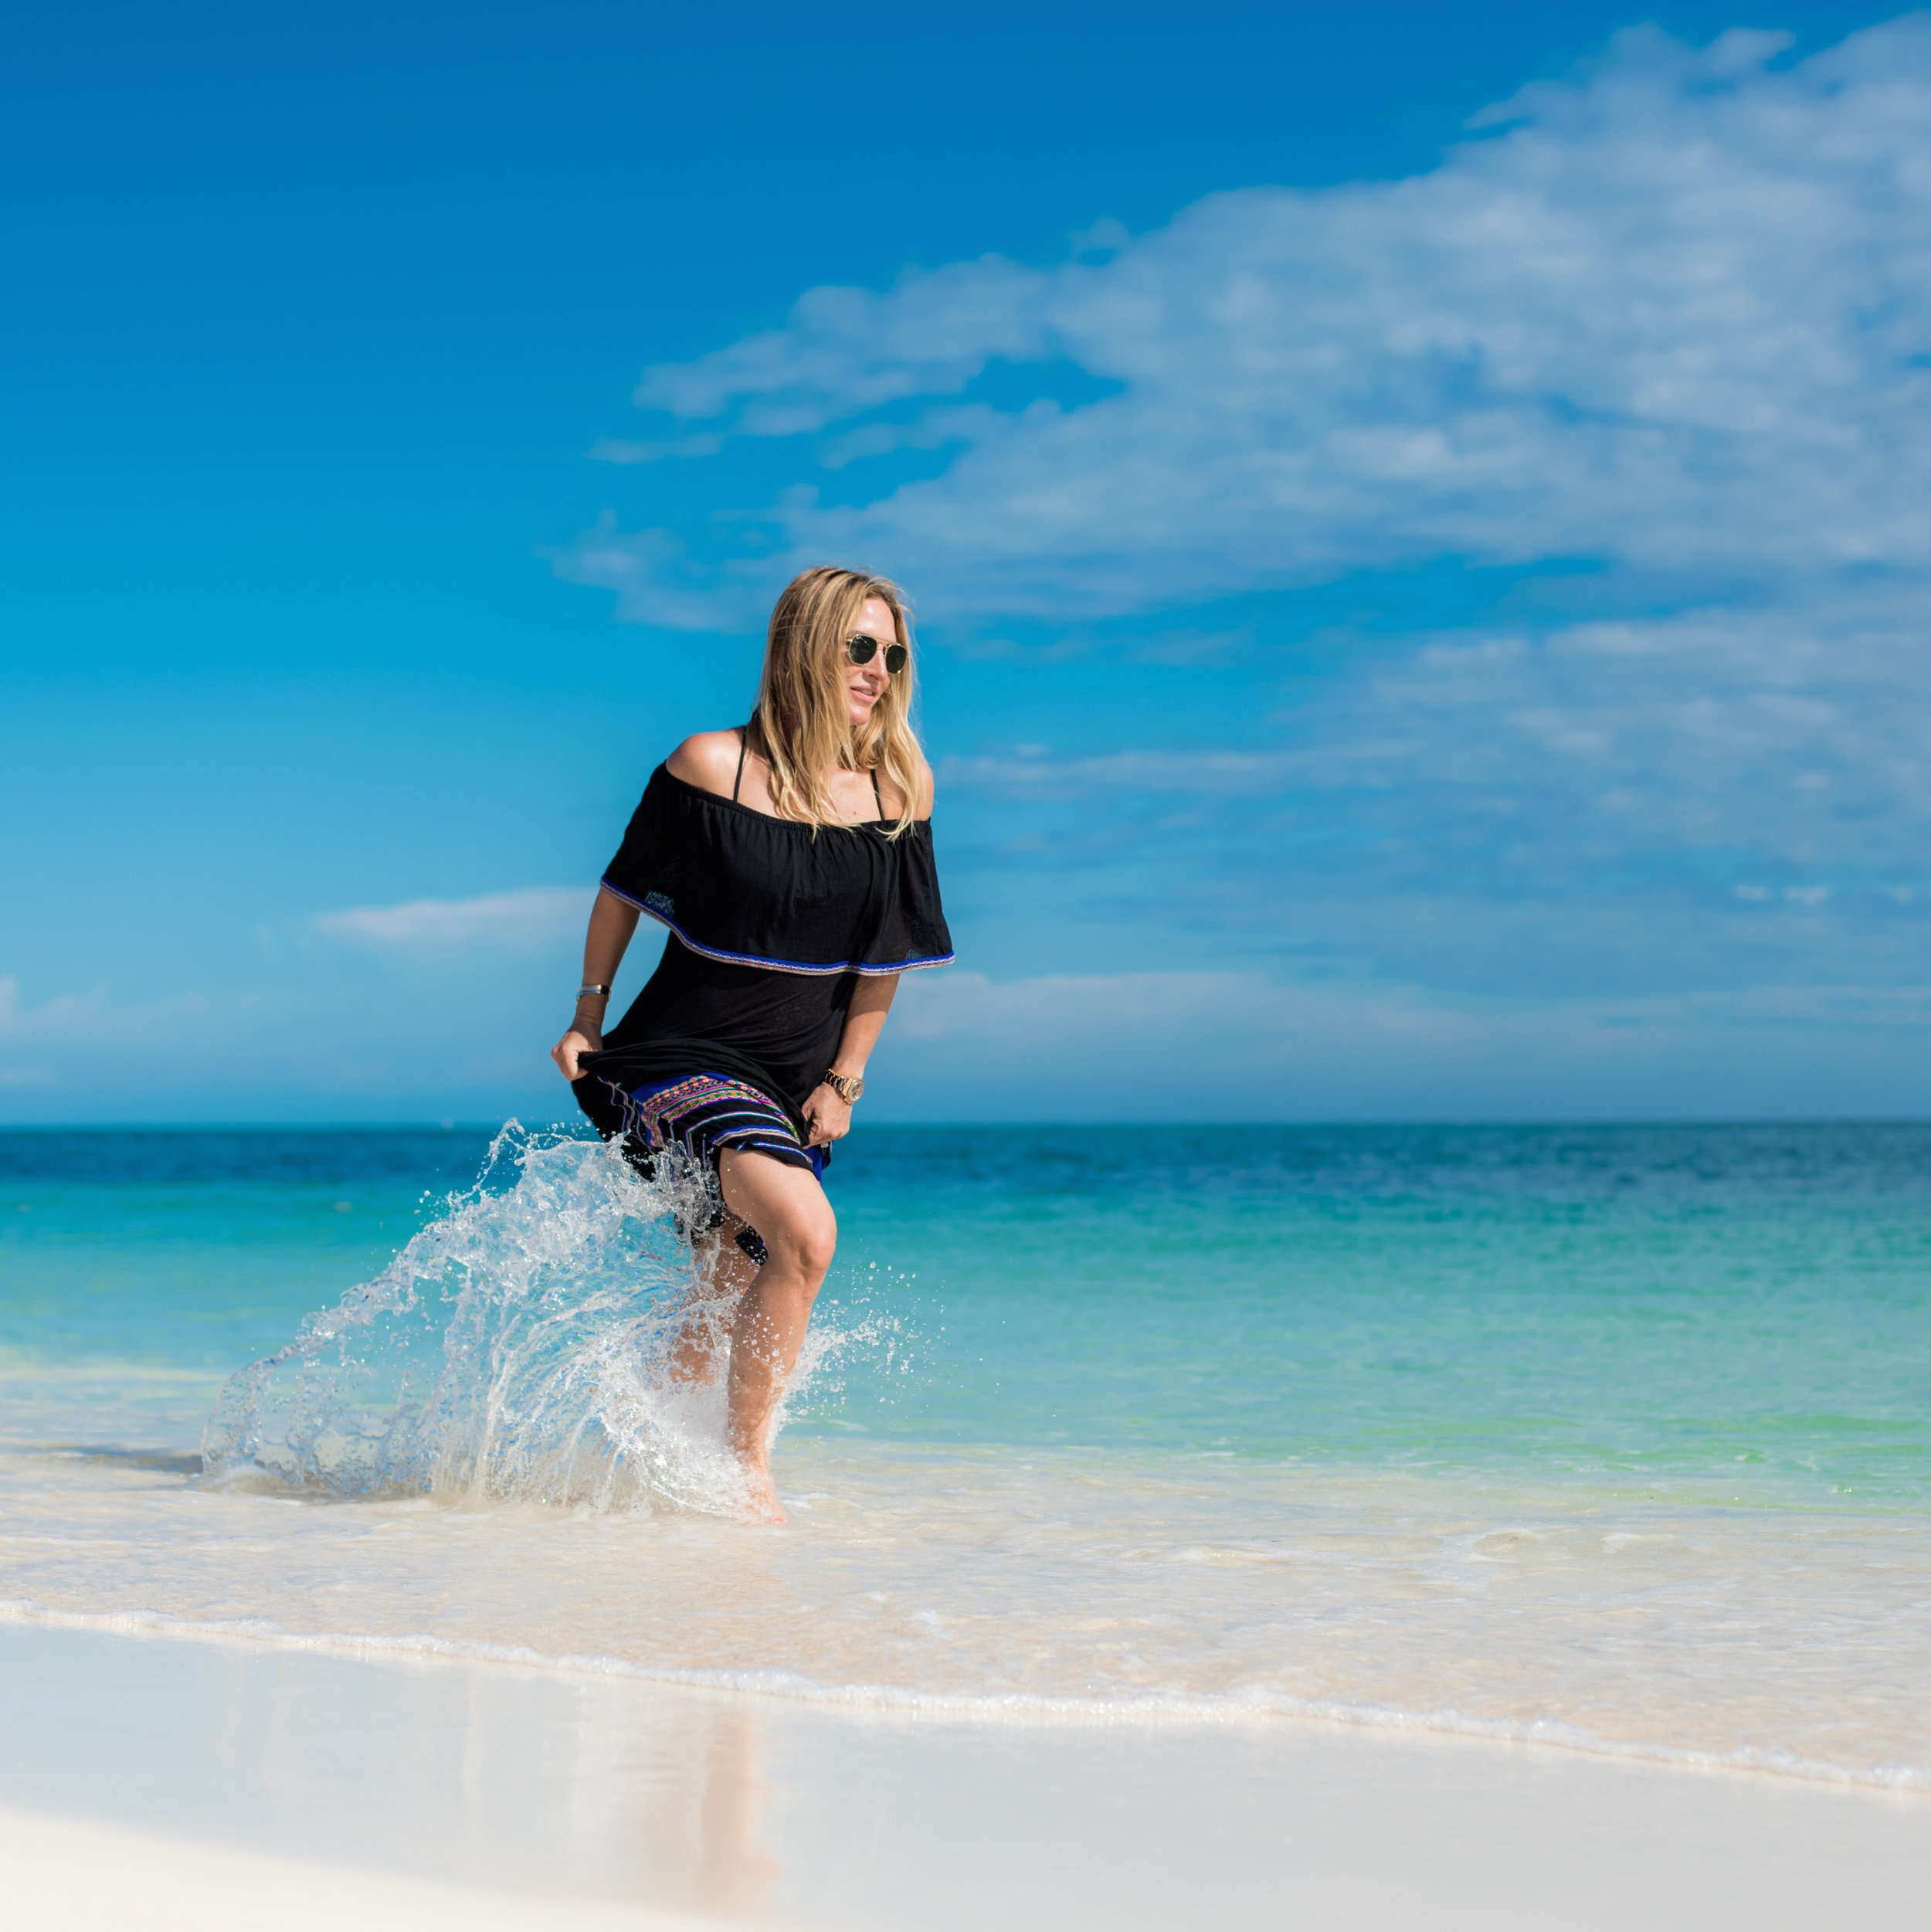 family vacation experience air transat lifestyle blog mademoiselle jules mlle at the finest playa Mujeres mexico